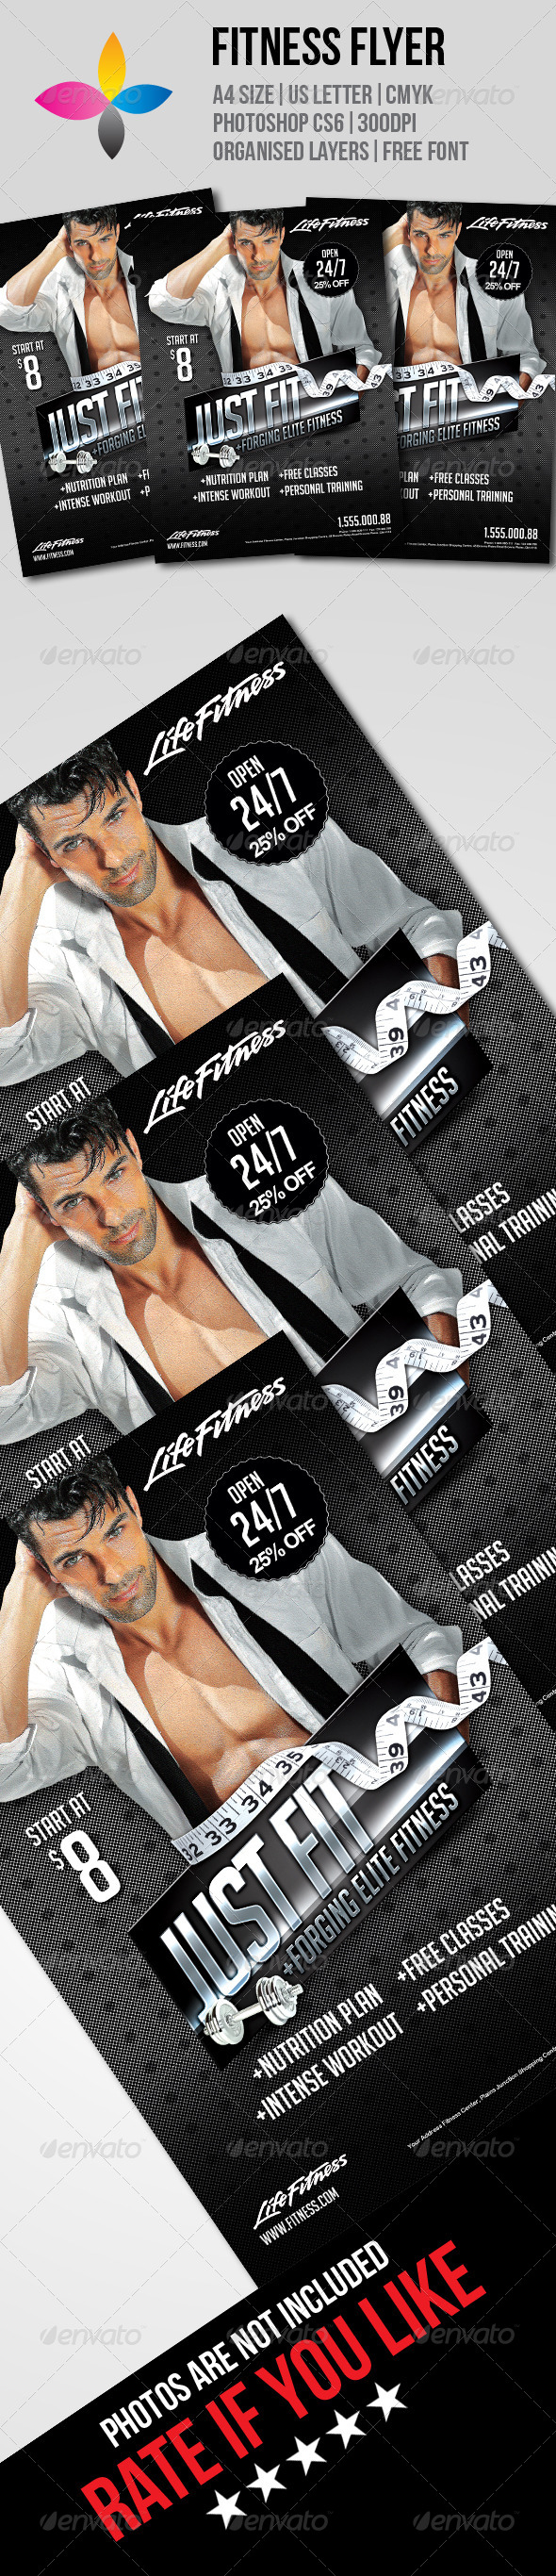 GraphicRiver Fitness Flyer 7755258